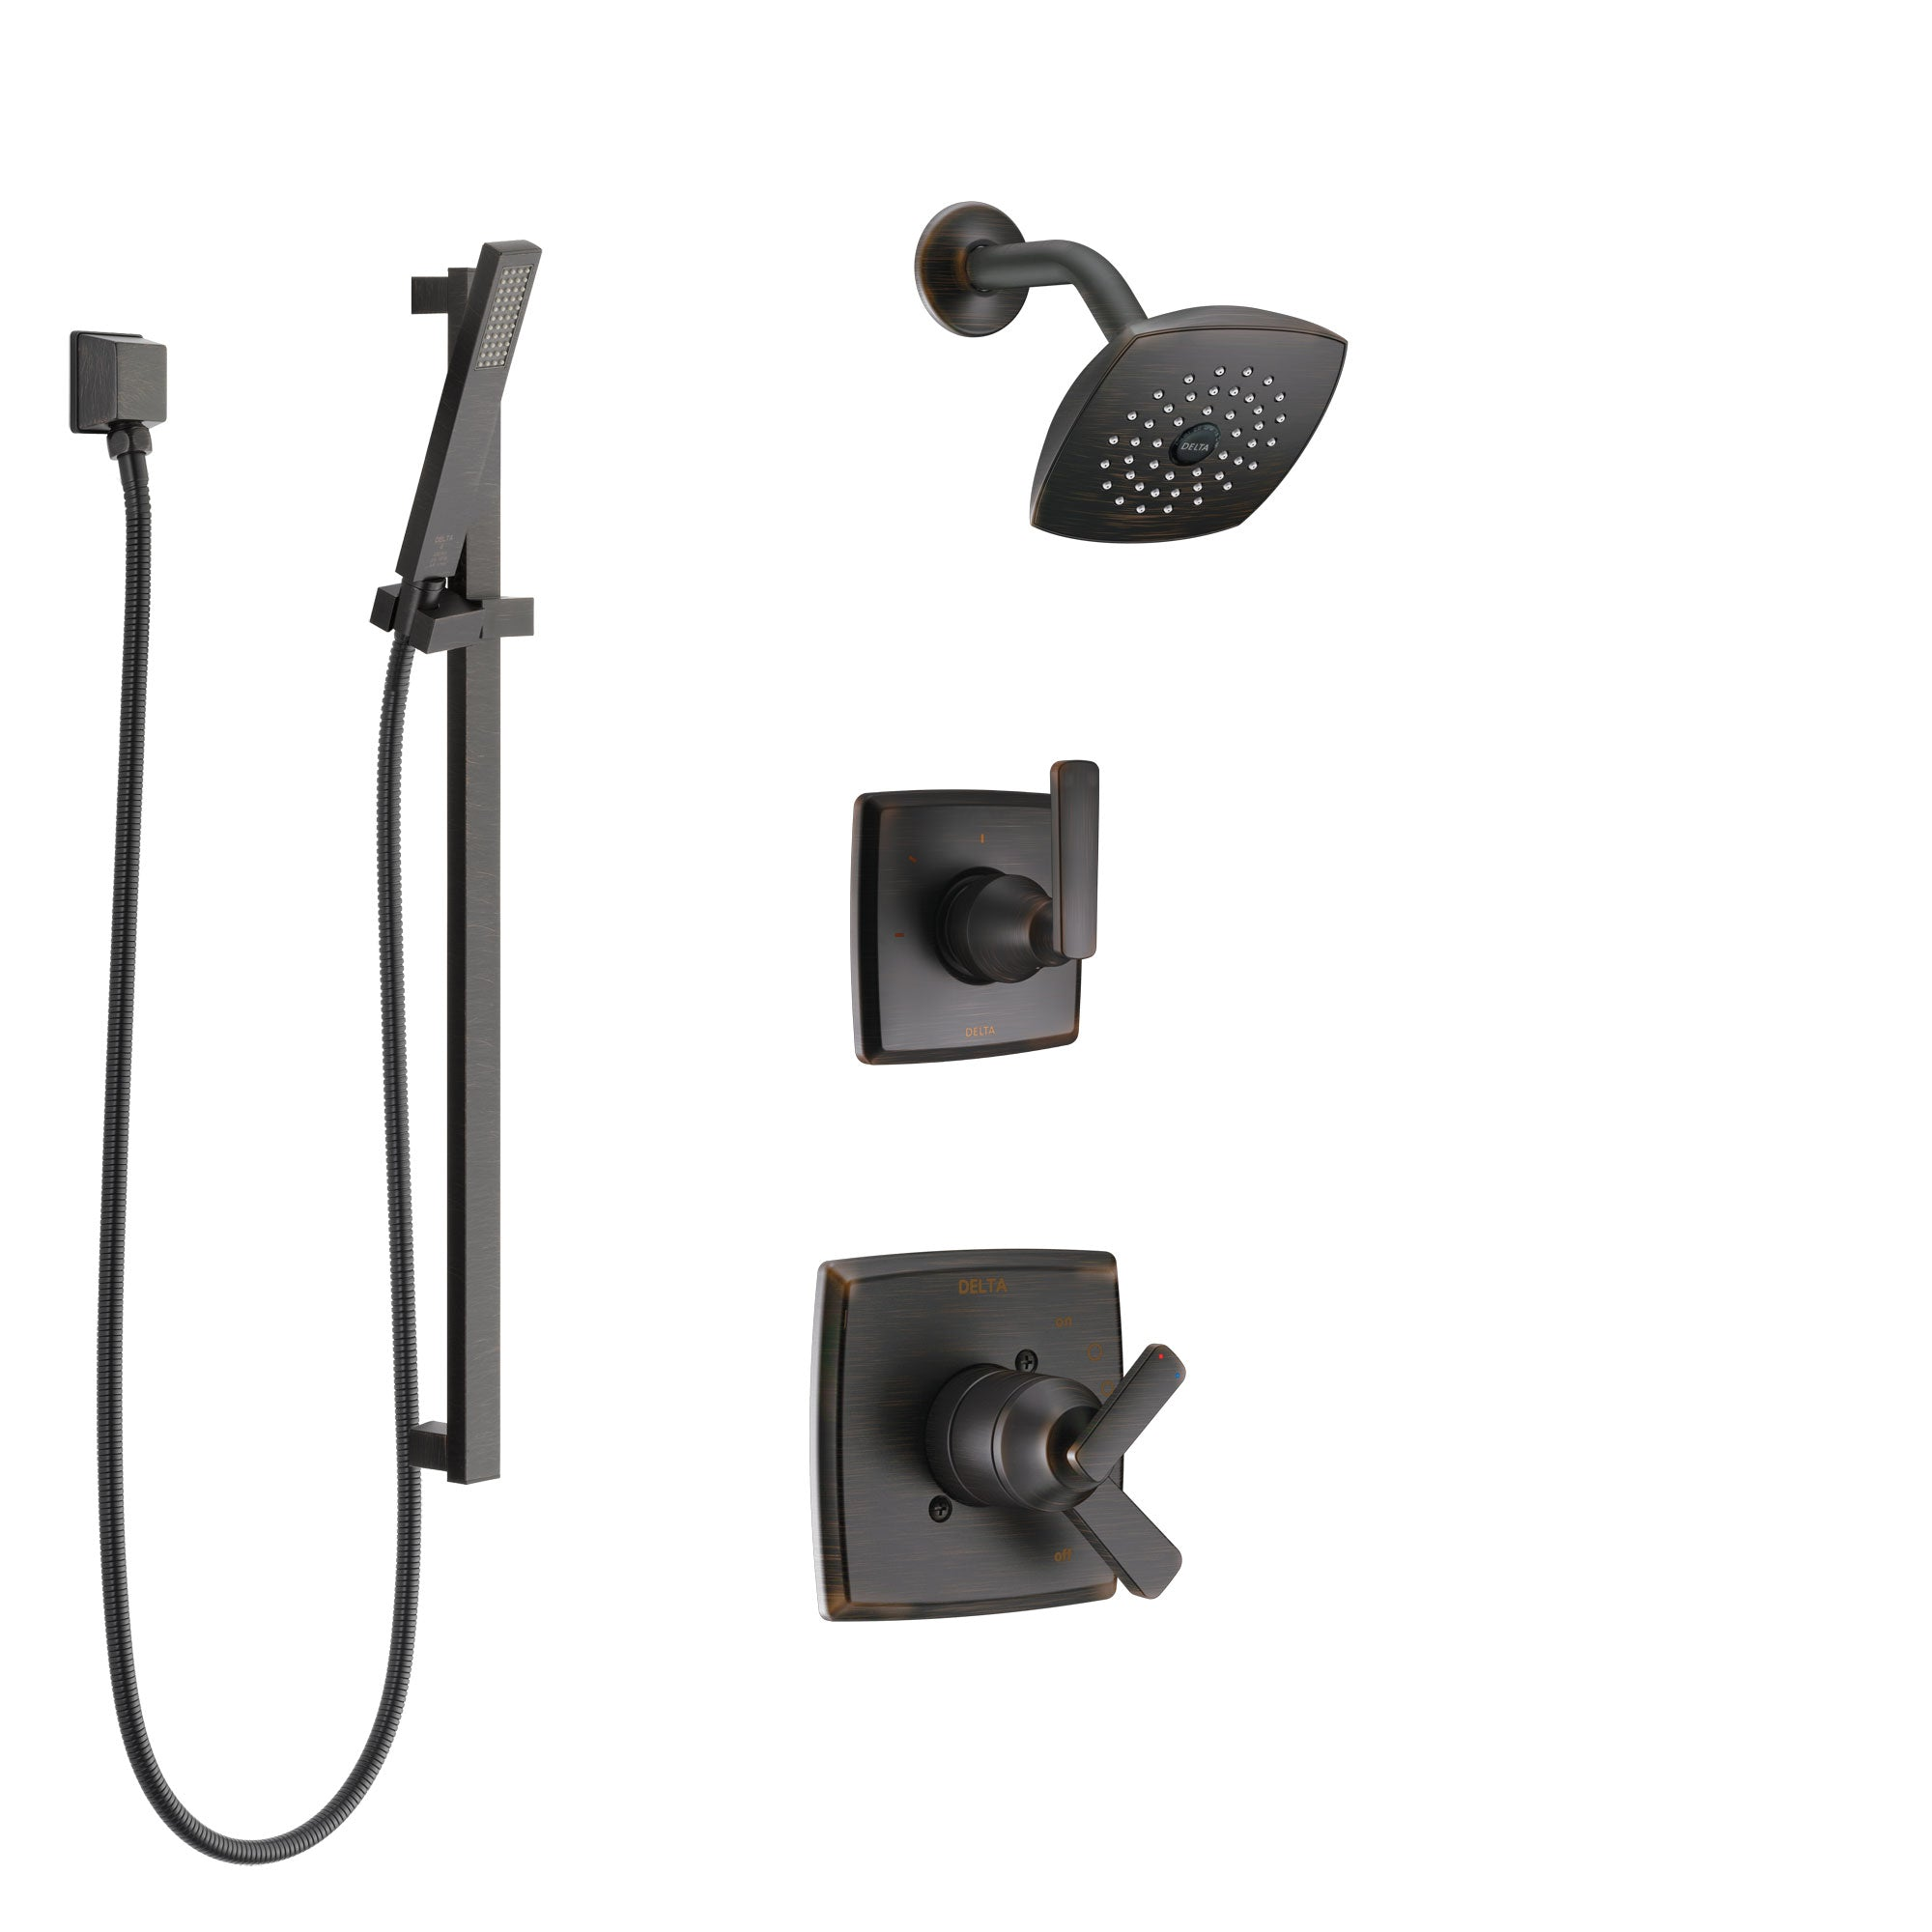 Delta Ashlyn Venetian Bronze Finish Shower System with Dual Control Handle, 3-Setting Diverter, Showerhead, and Hand Shower with Slidebar SS17264RB4